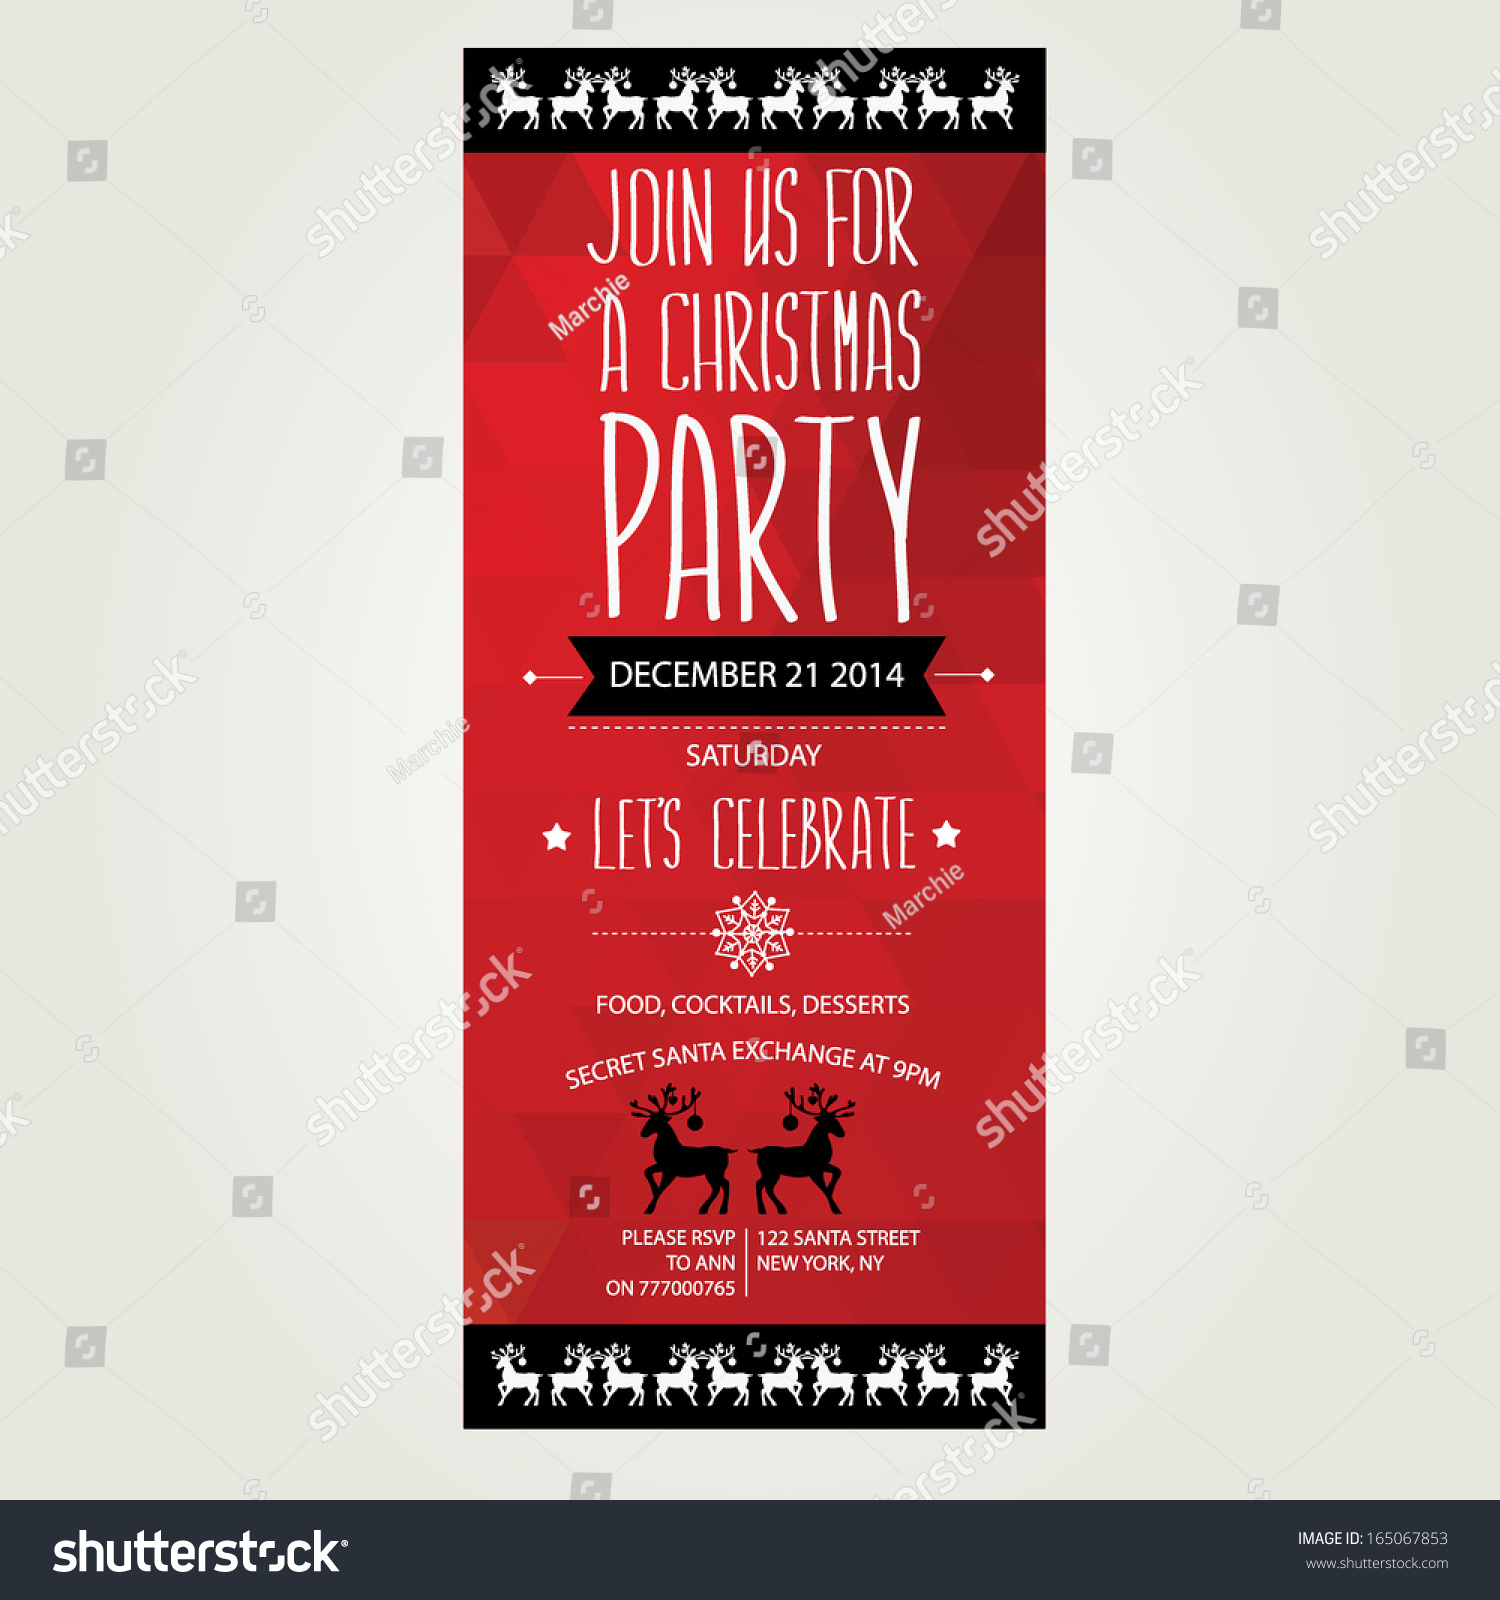 Vector Christmas Party Invitation Toys Holiday Stock Vector (2018 ...